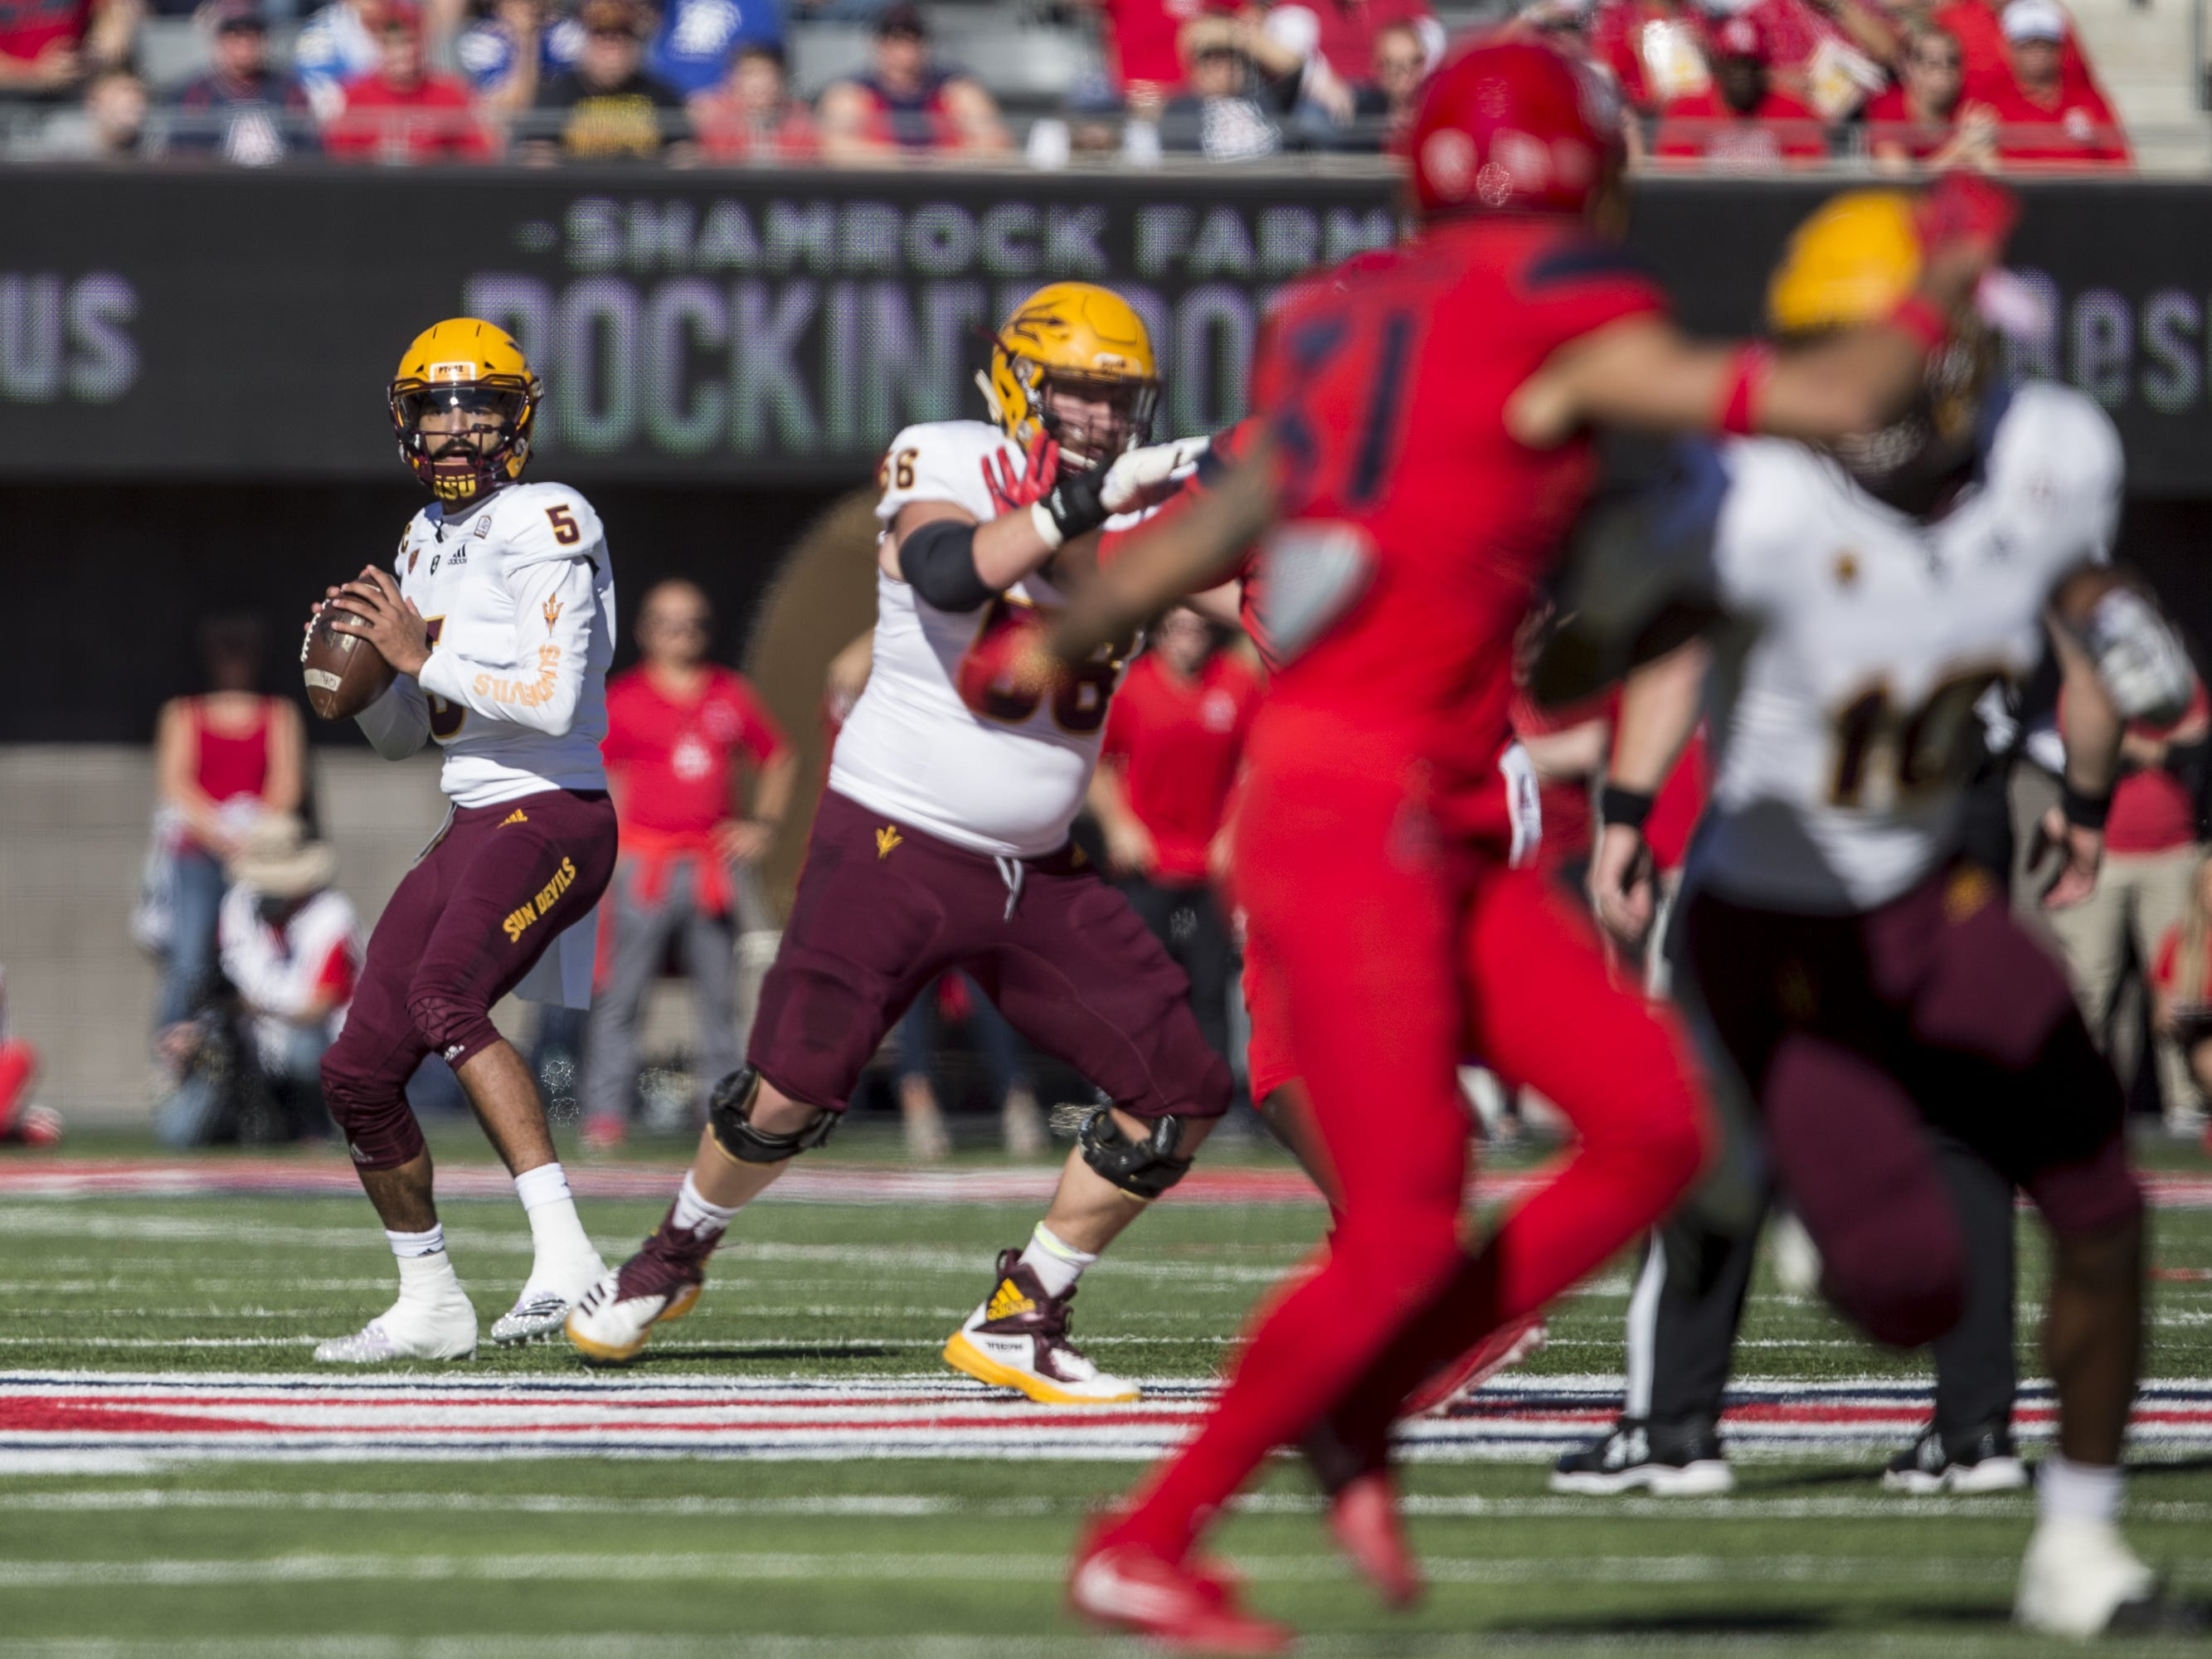 Arizona State's Manny Wilkins looks to pass against Arizona during the first half of the Territorial Cup on Saturday, Nov. 24, 2018, at Arizona Stadium in Tucson, Ariz.